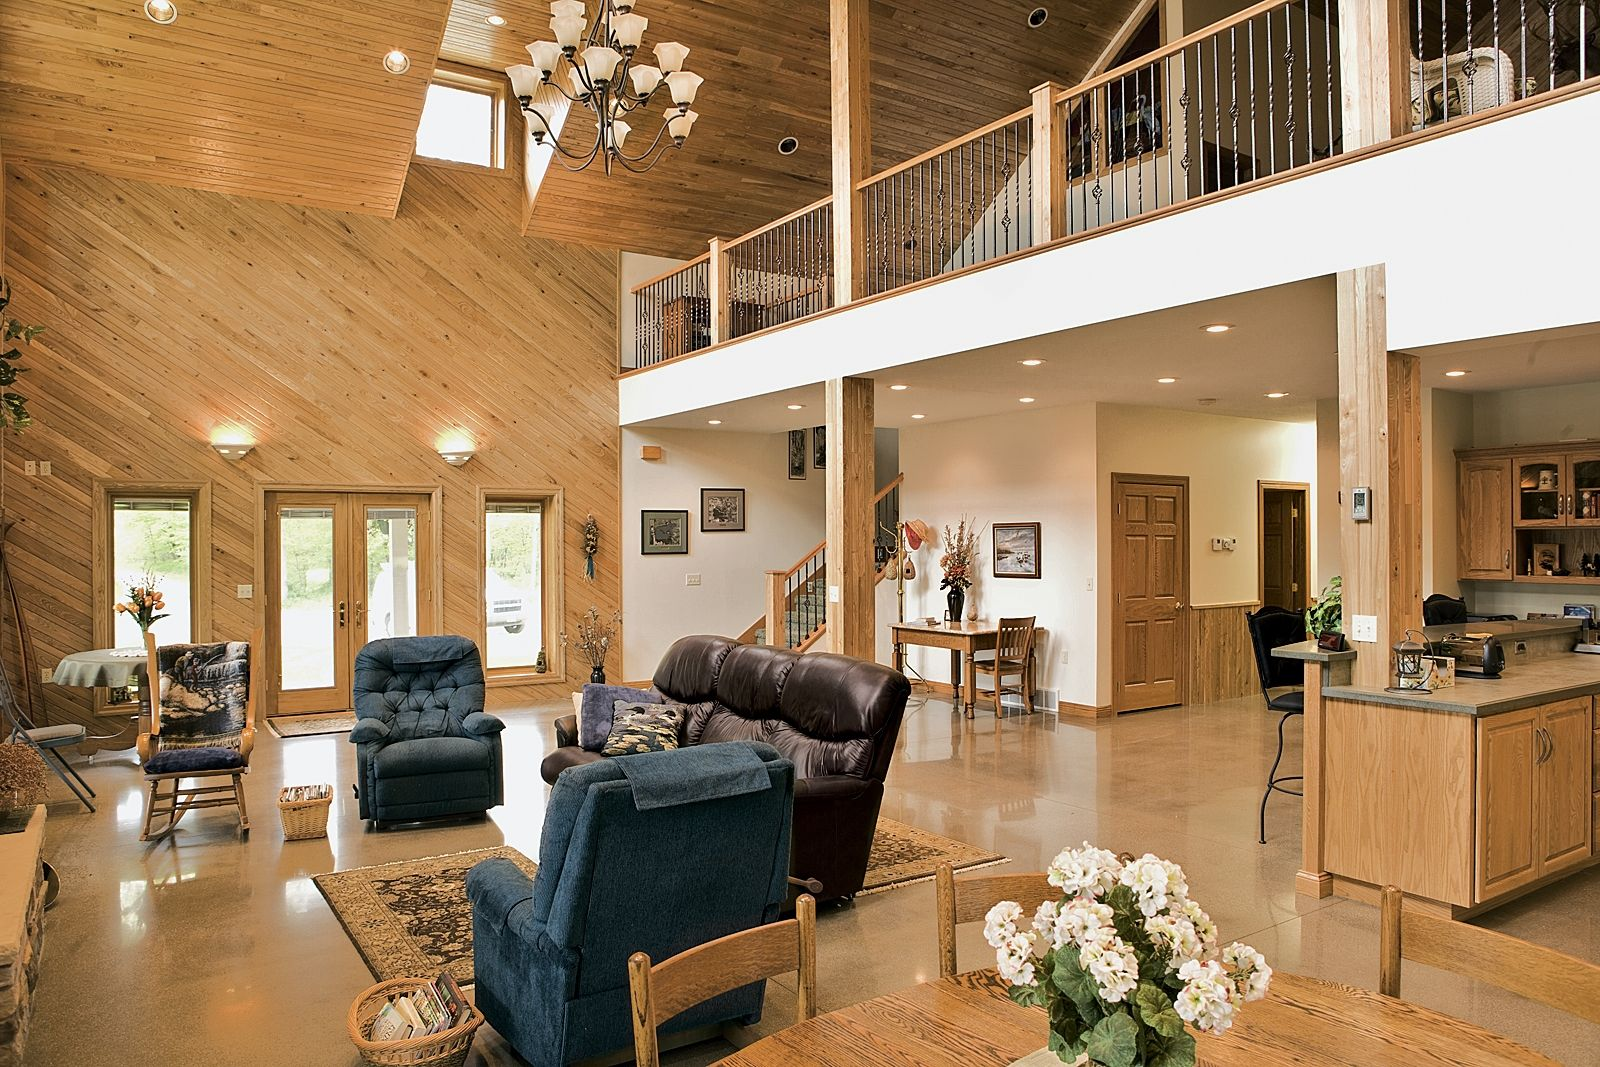 Pole barn home interior photos morton pole barn houses for Home interior images